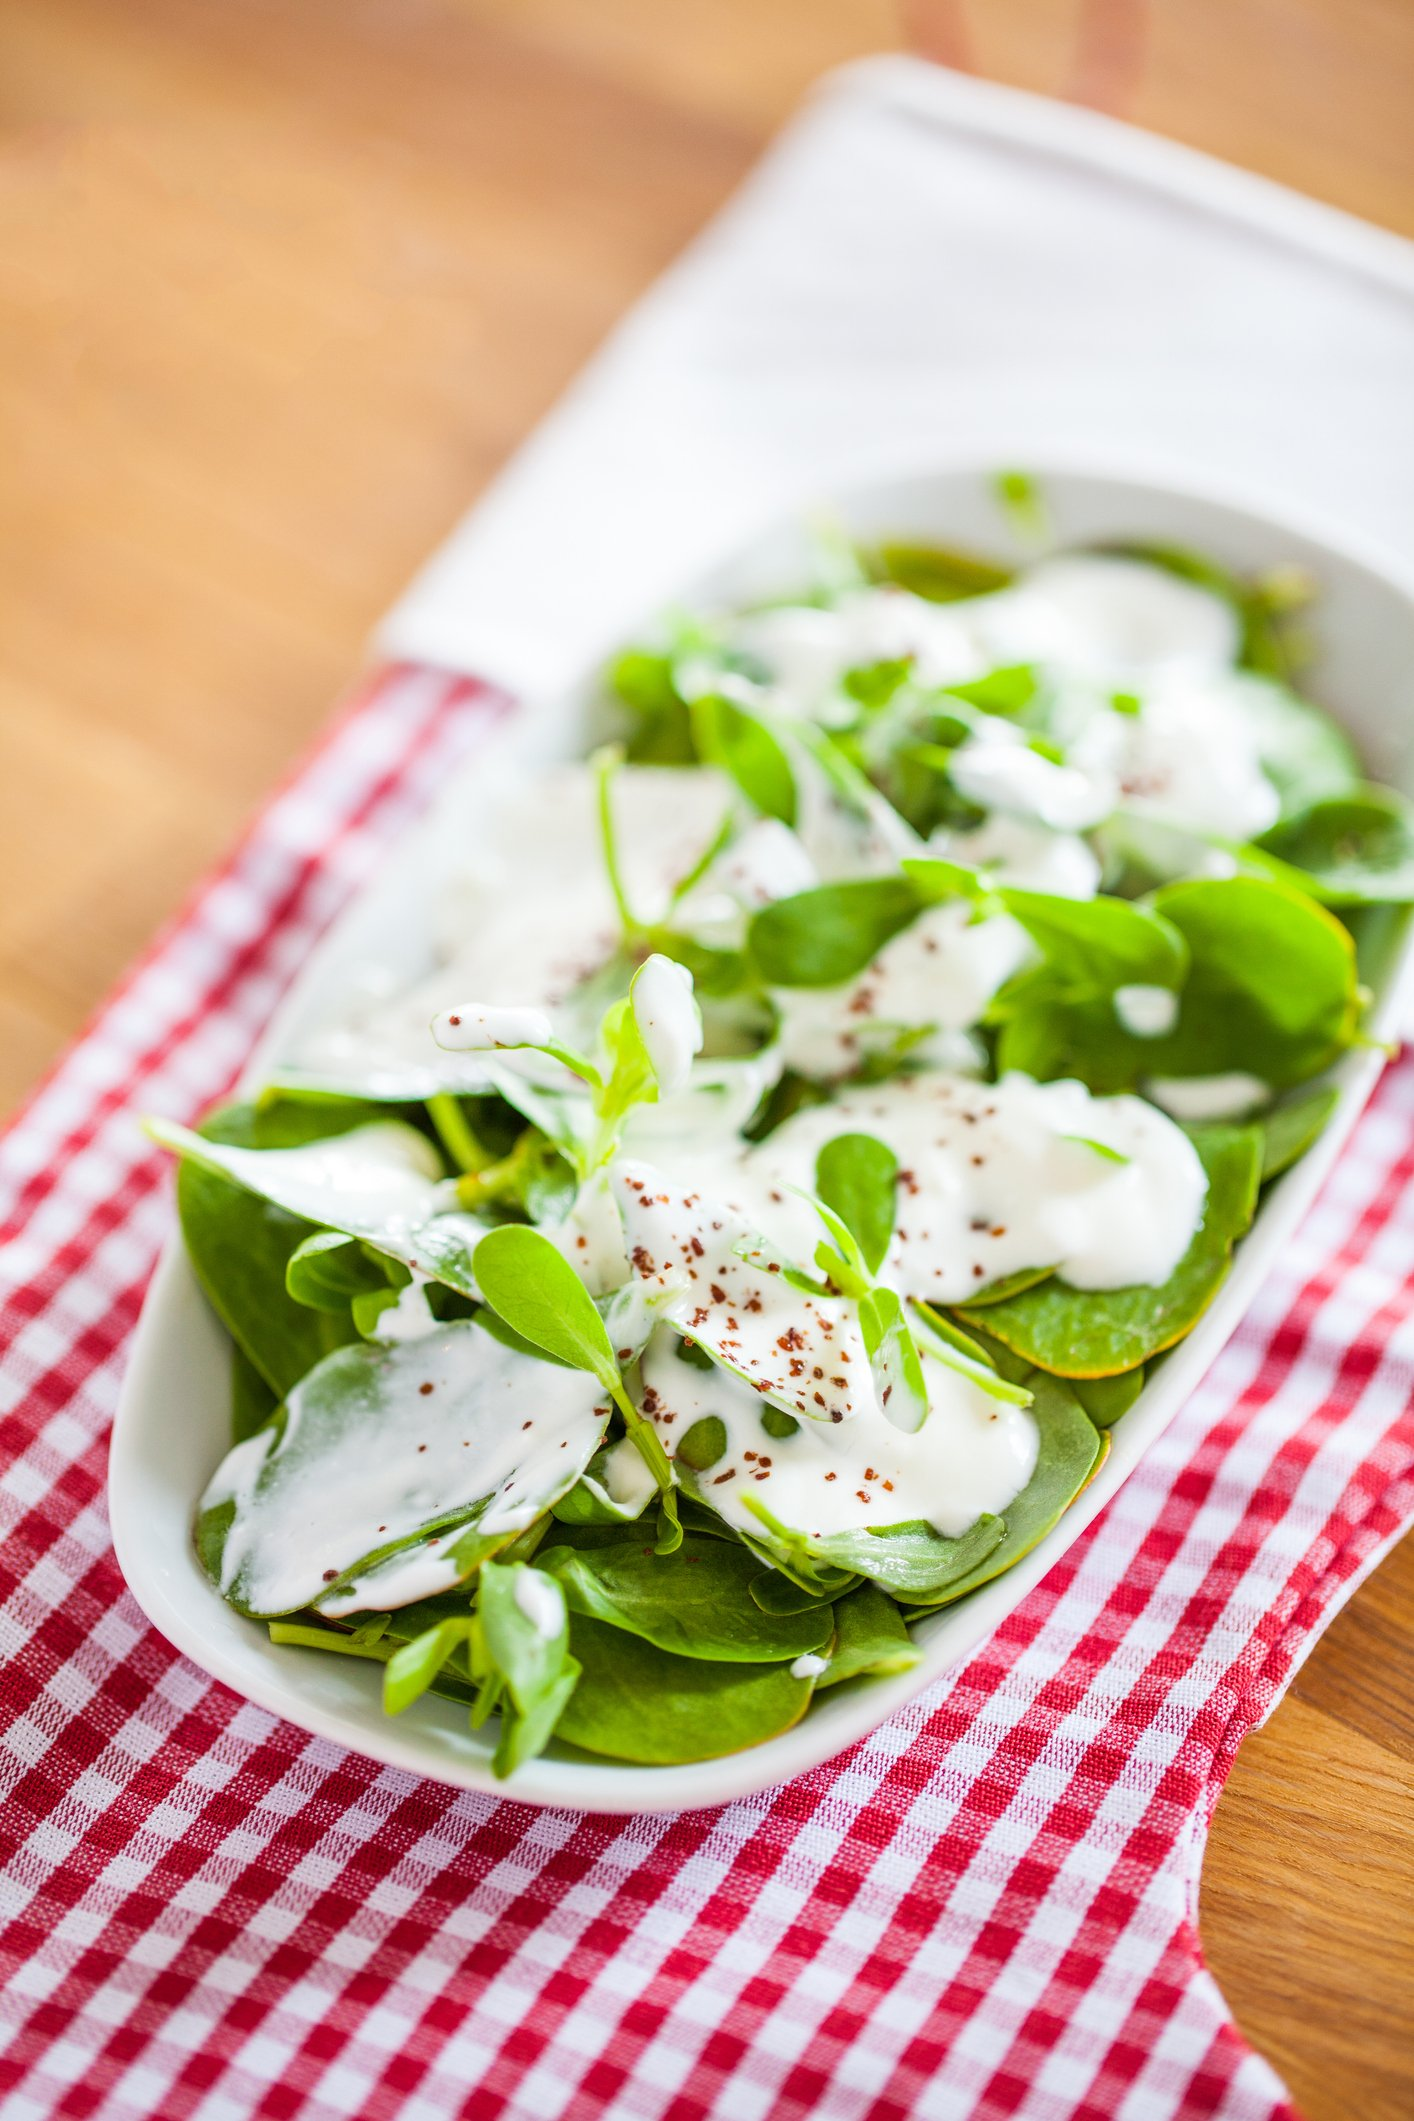 Pepper flakes and sumac are a great addition to yogurt and purslane. (iStock Photo)